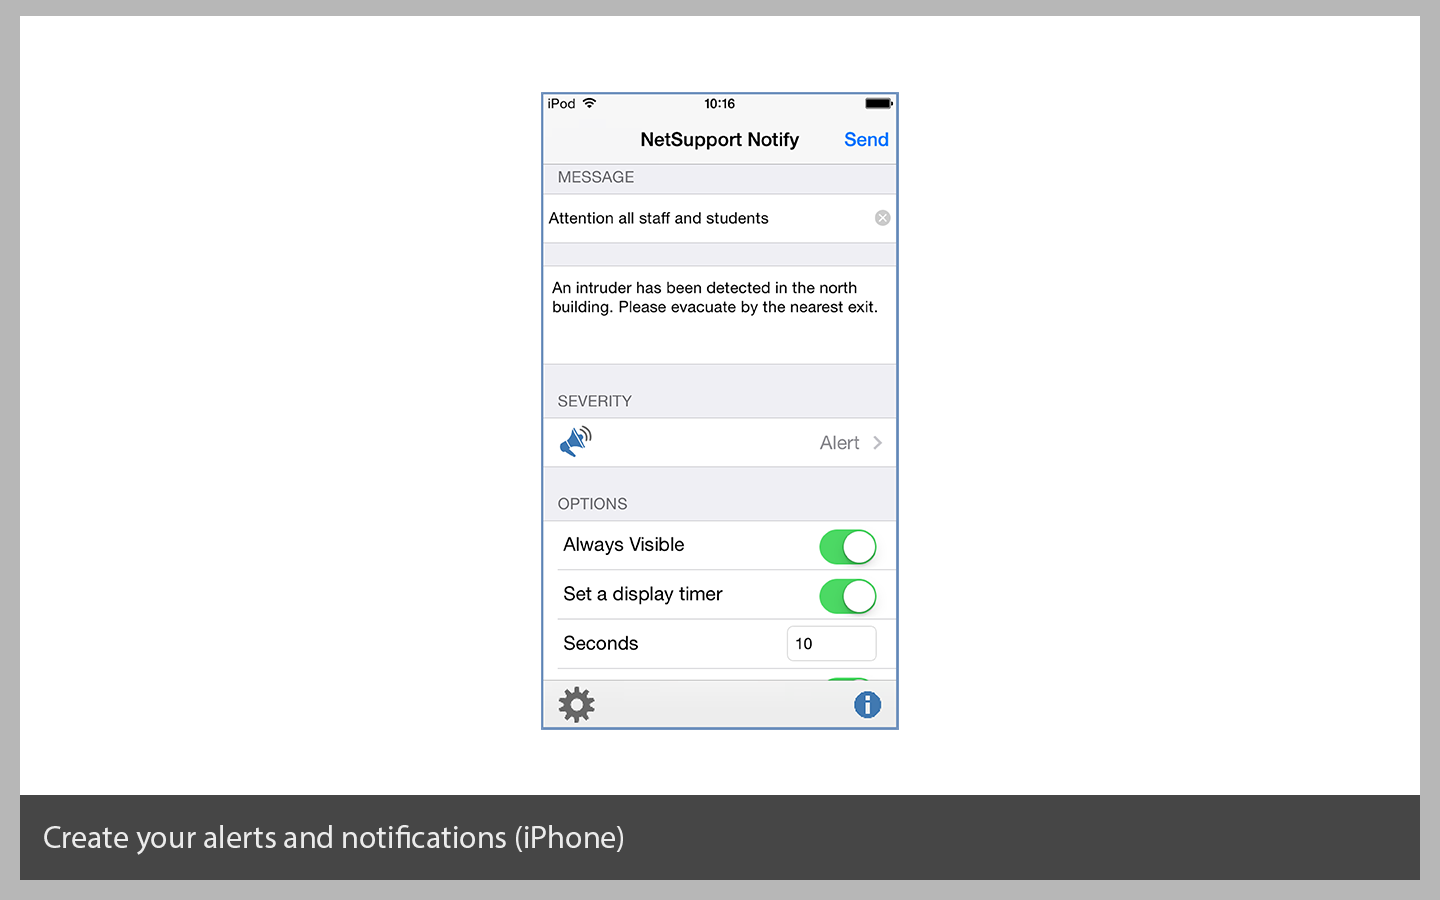 Create alerts (on an iPhone)